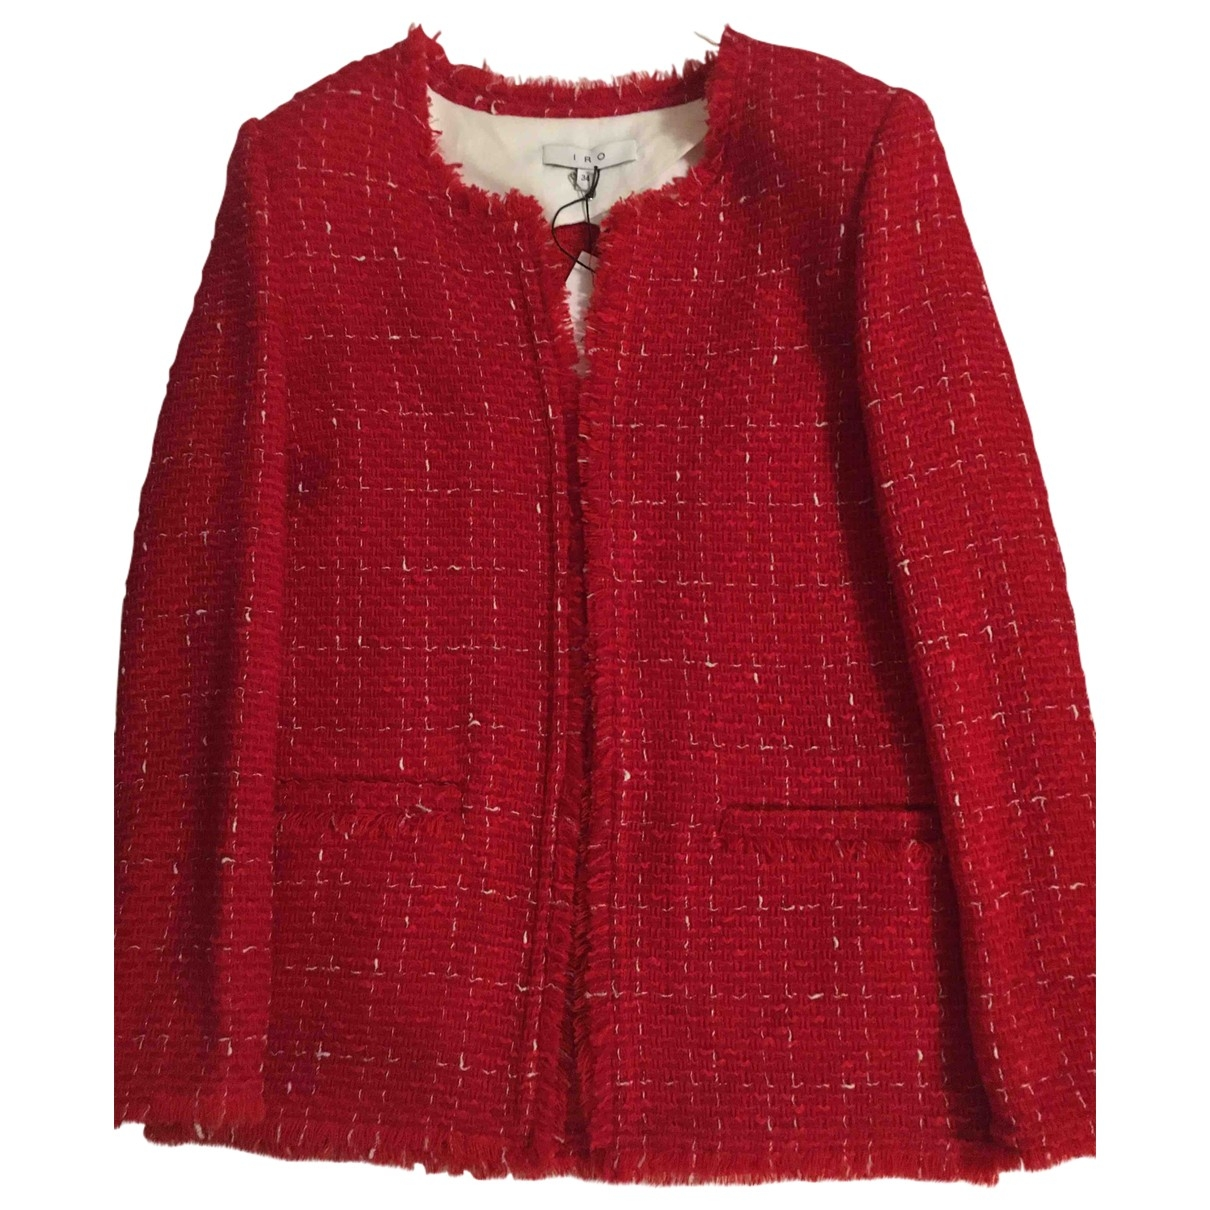 Iro \N Red Tweed jacket for Women 34 FR